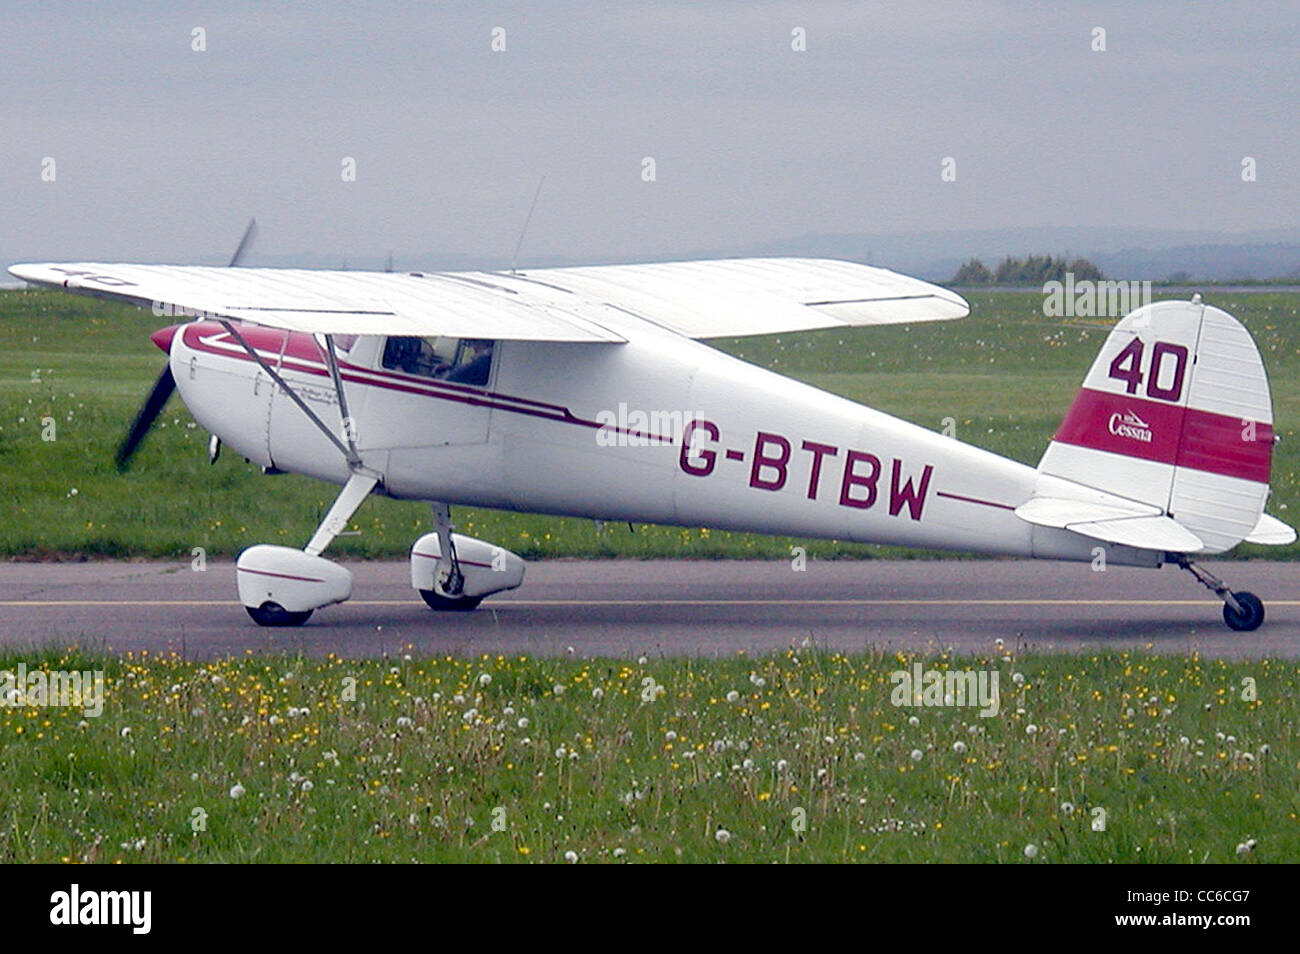 Cessna 120 (G-BTBW), built 1947, at Kemble airfield, Gloucestershire, England. - Stock Image